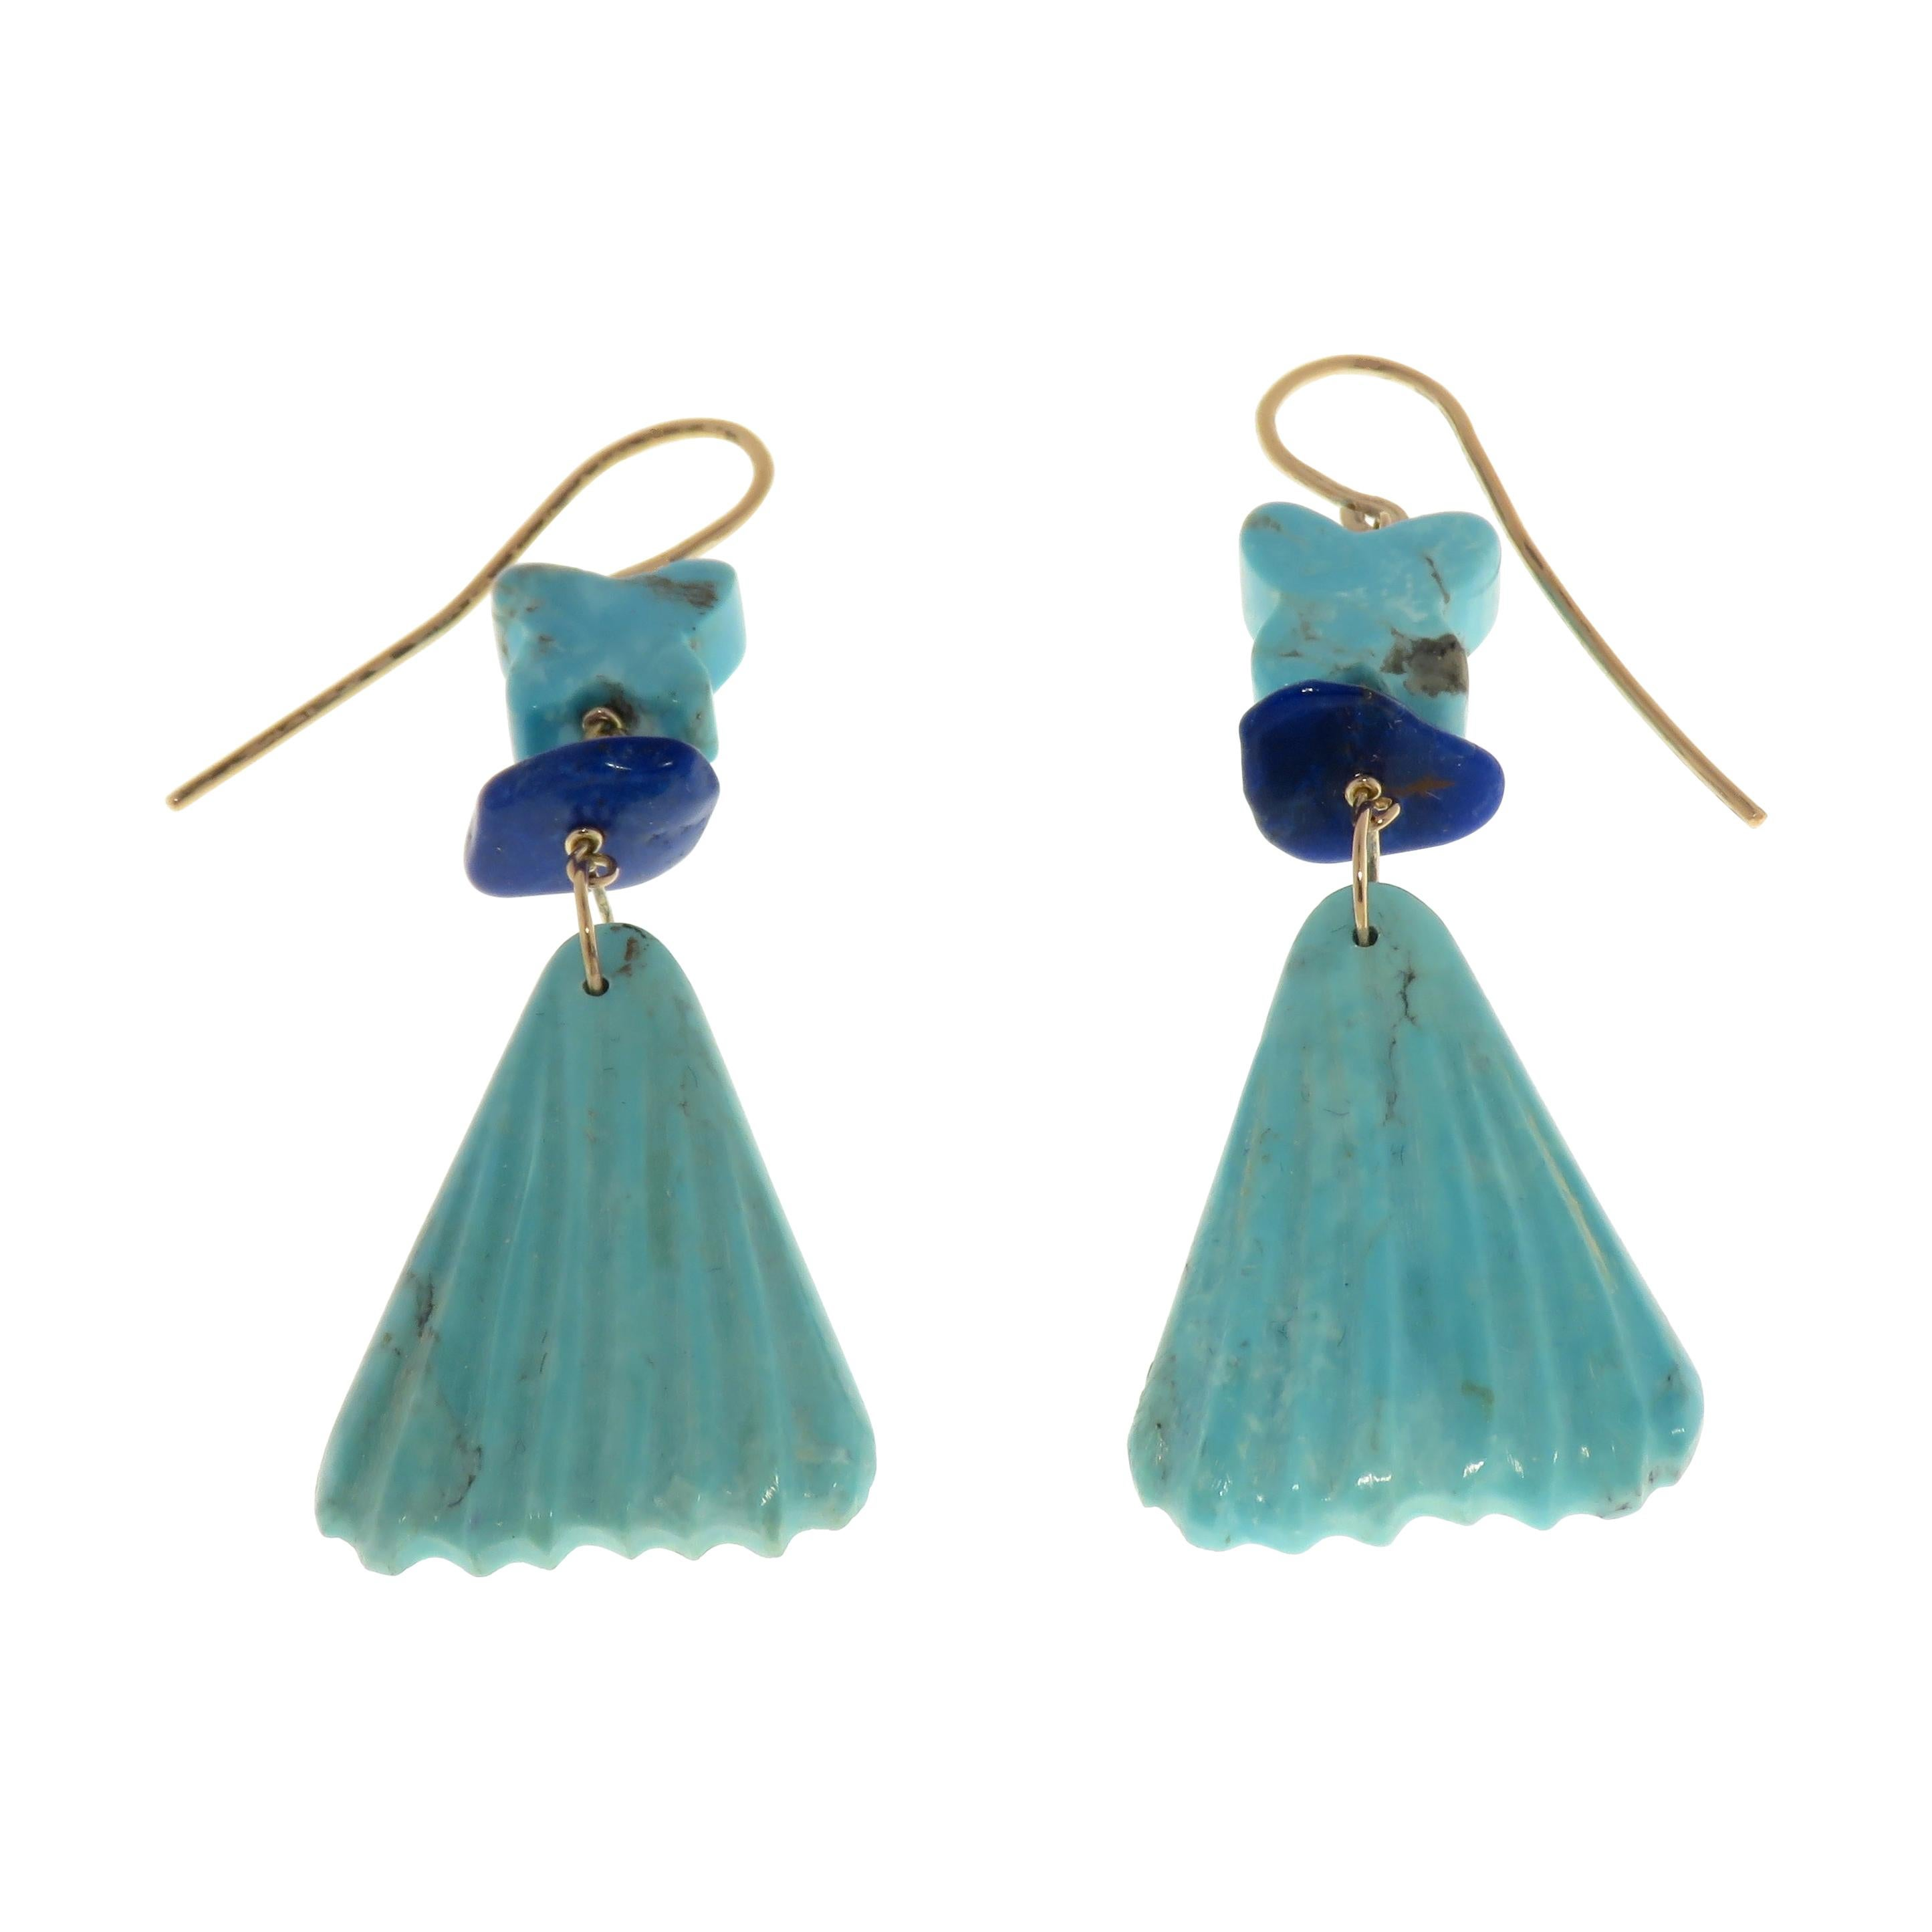 Turquoise Lapis Lazuli 9 Karat Rose Gold Dangle Earrings Handcrafted in Italy